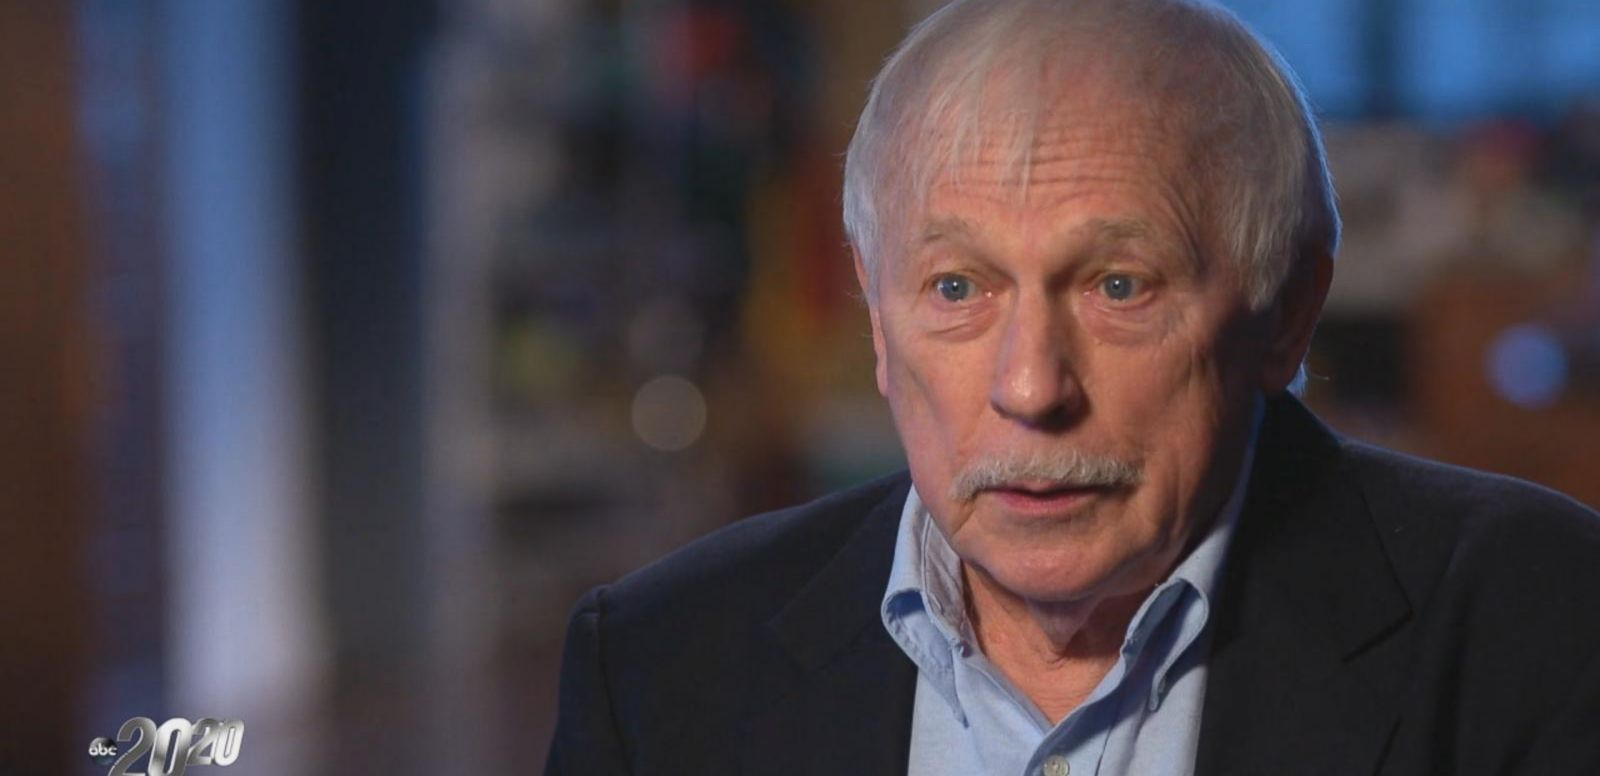 VIDEO: Scientology Leader David Miscavige's Father on David's Childhood